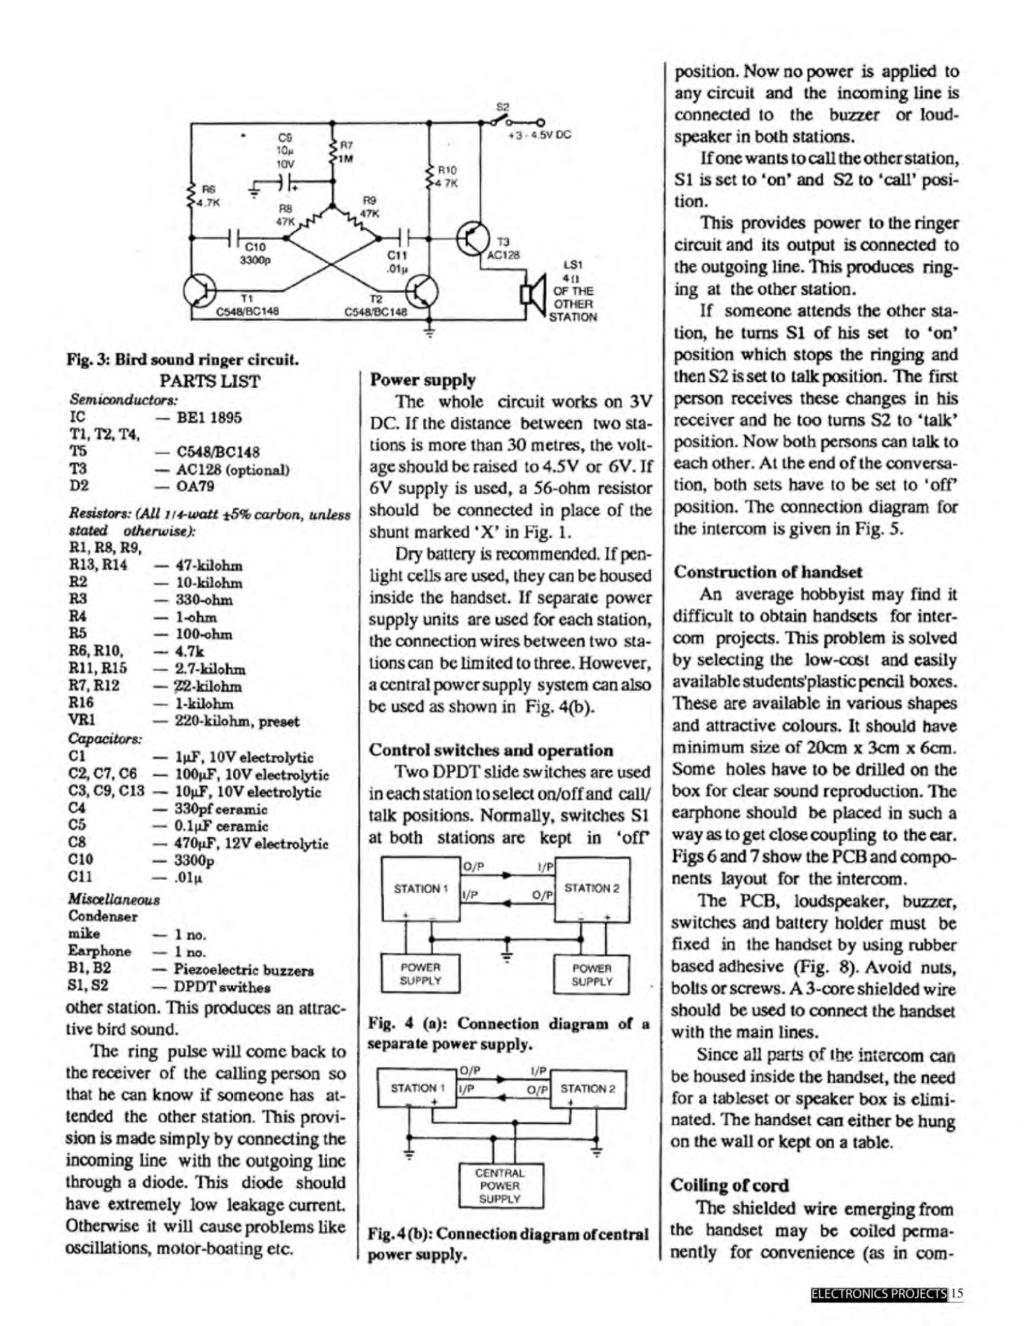 A Compilation Of 102 And Circuit Ideas For Construction Projects 555 Timer Bistable Multivibrator Technology Hacking Now No Power Is Applied To S2 Any The Incoming Line